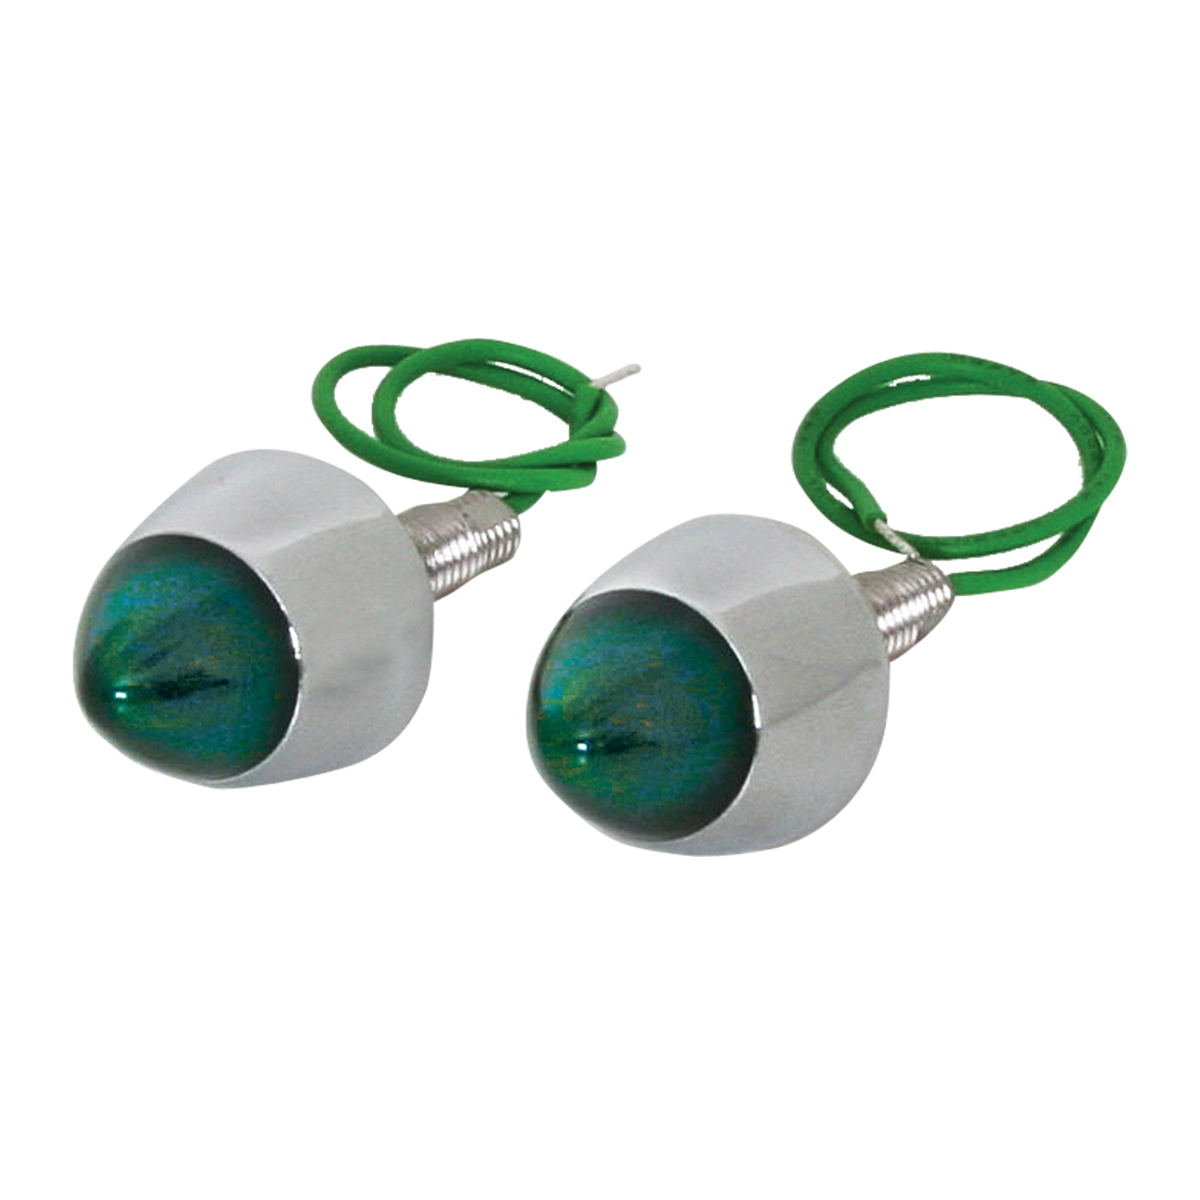 LED Lighted Bullet Fastener Set of 2 - Green